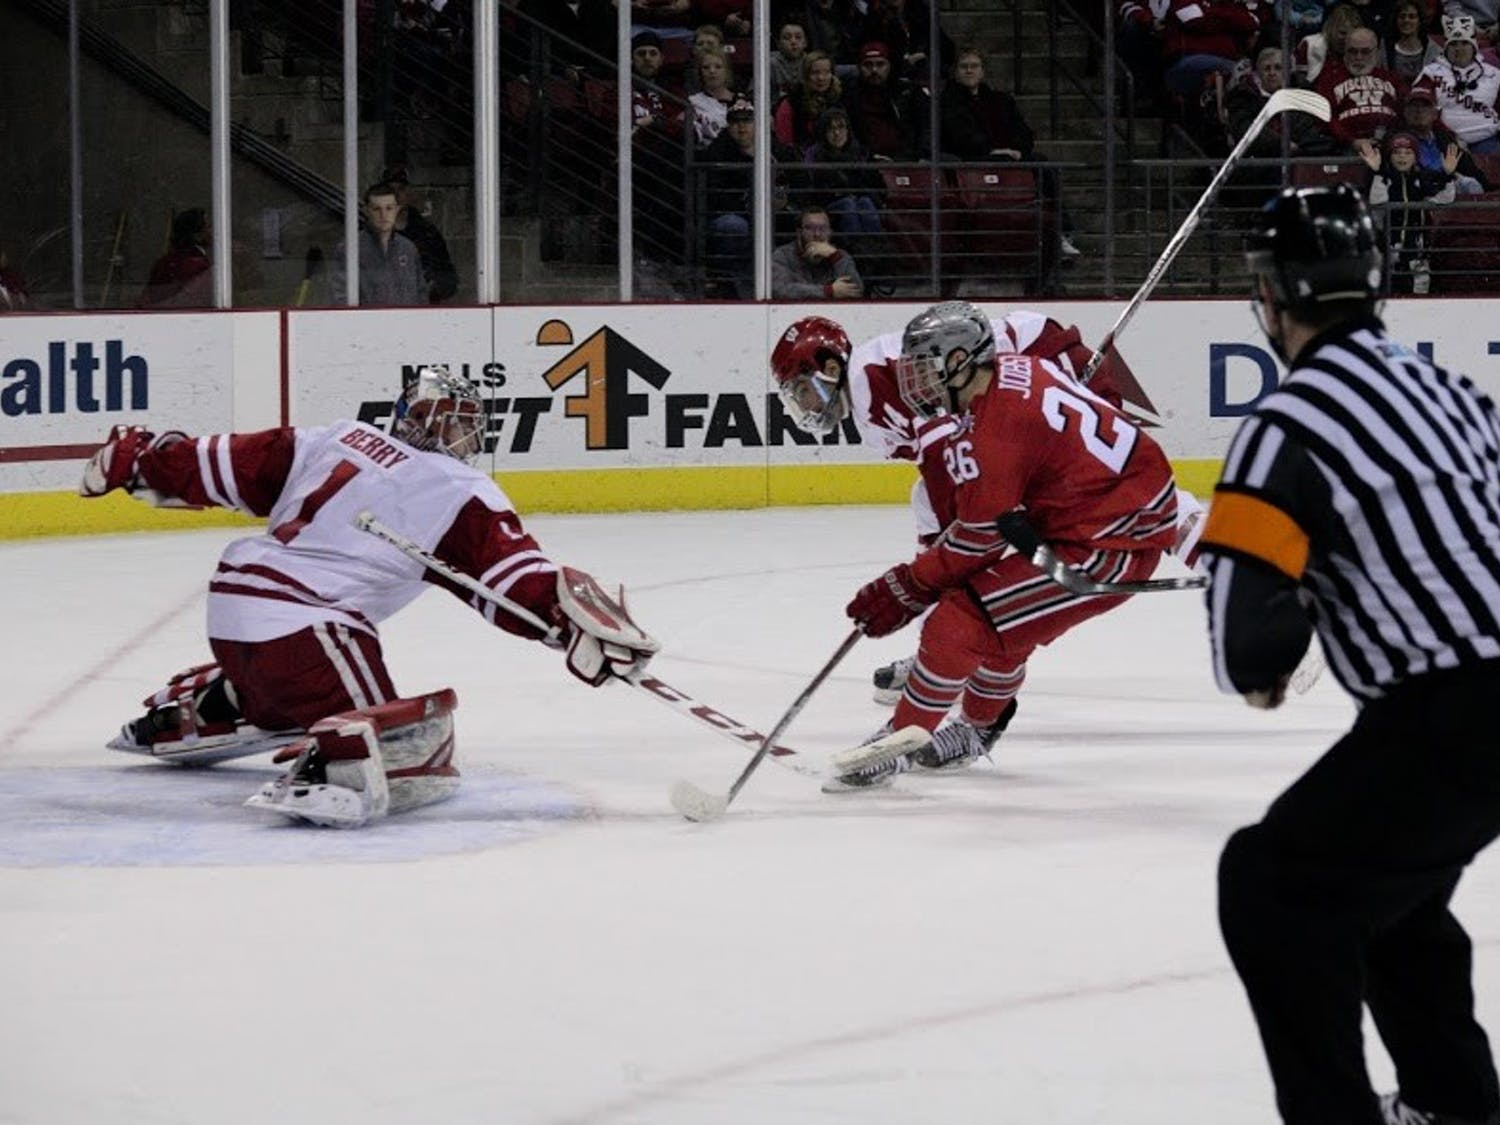 Mason Jobst racked up eight points against UW last season, including an assist on a last minute goal that sent its game in Madison Square Garden to overtime.